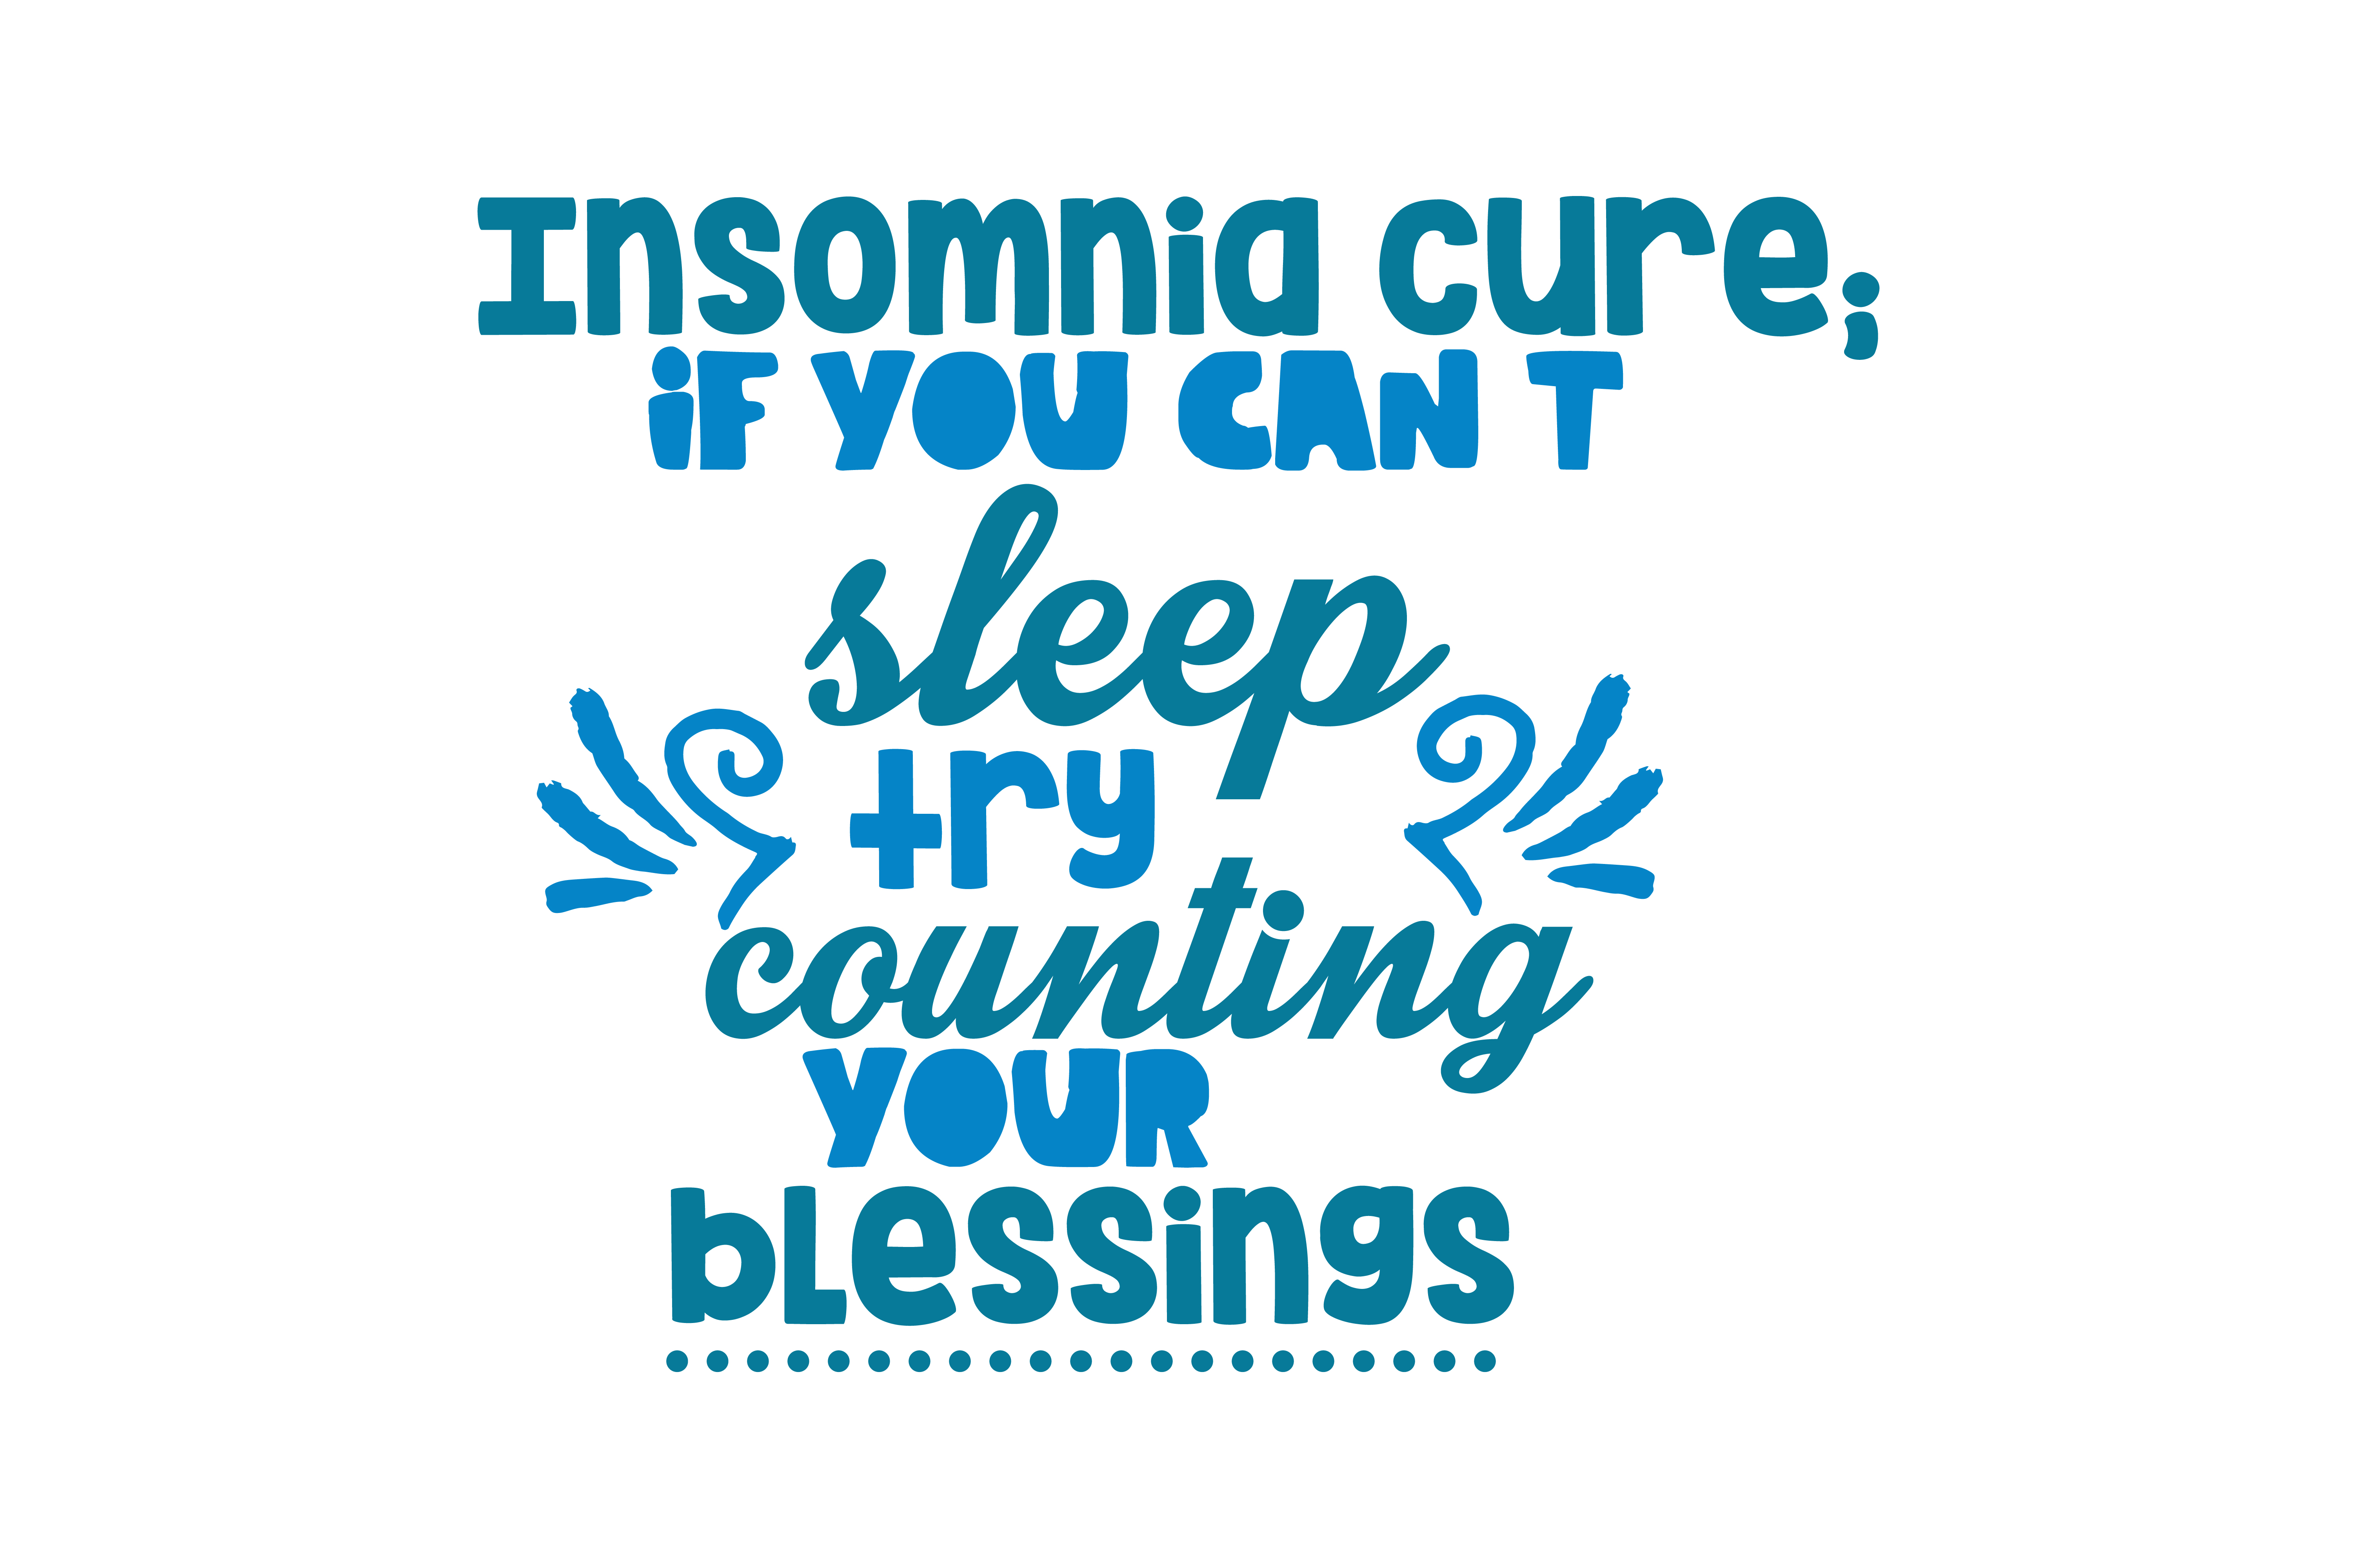 Download Free Insomnia Cure If You Can T Sleep Try Counting Your Blessings for Cricut Explore, Silhouette and other cutting machines.